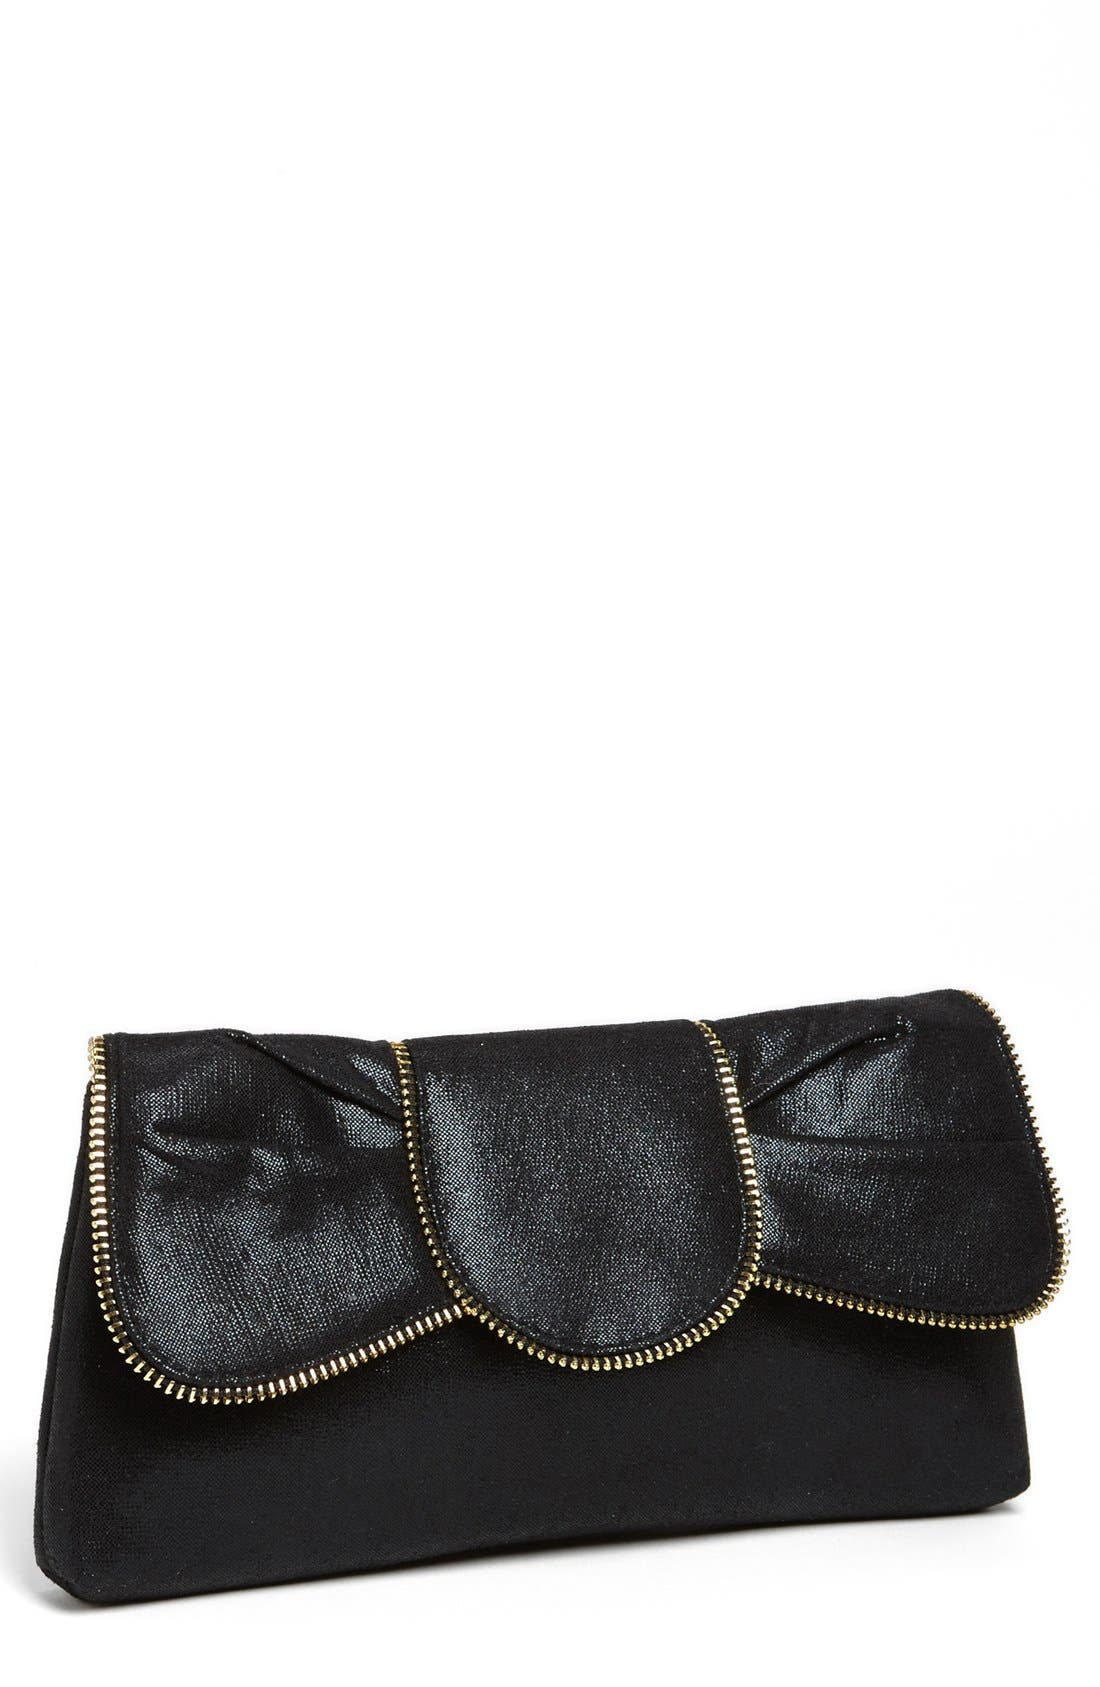 Alternate Image 1 Selected - Magid Bow Clutch